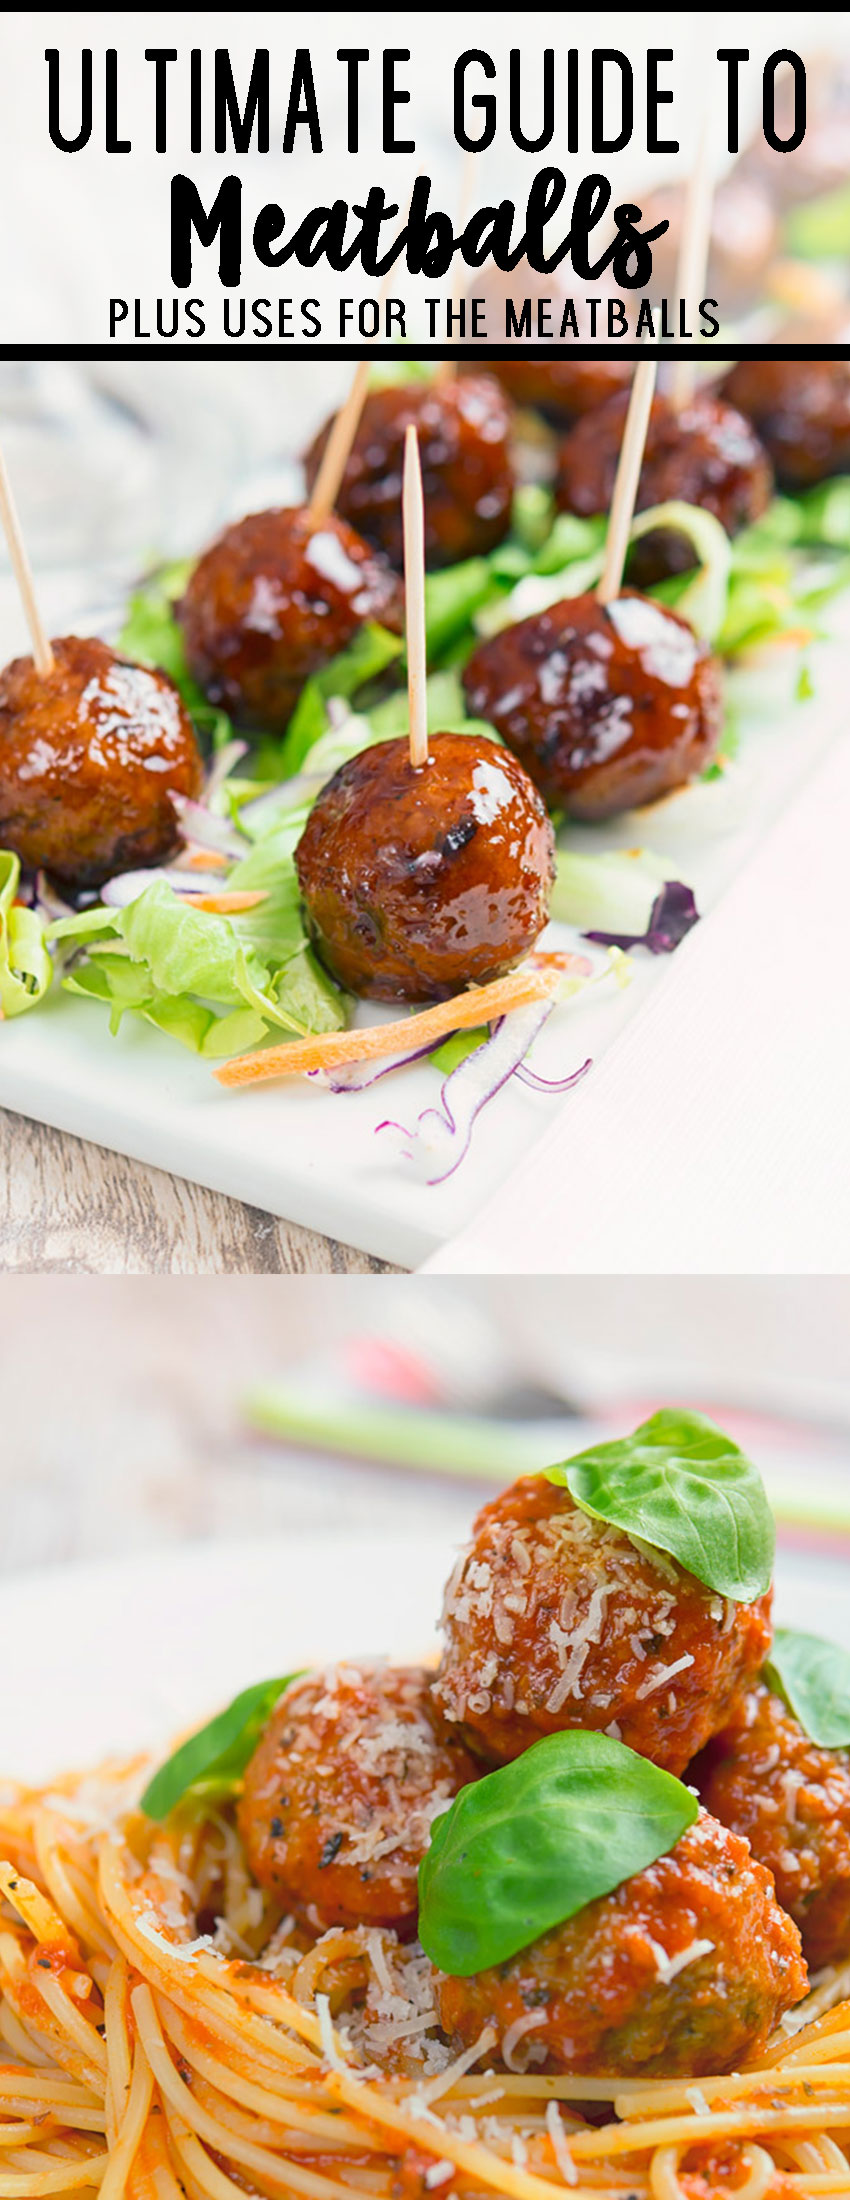 The ultimate guide to meatballs, how to make them and how to use them.